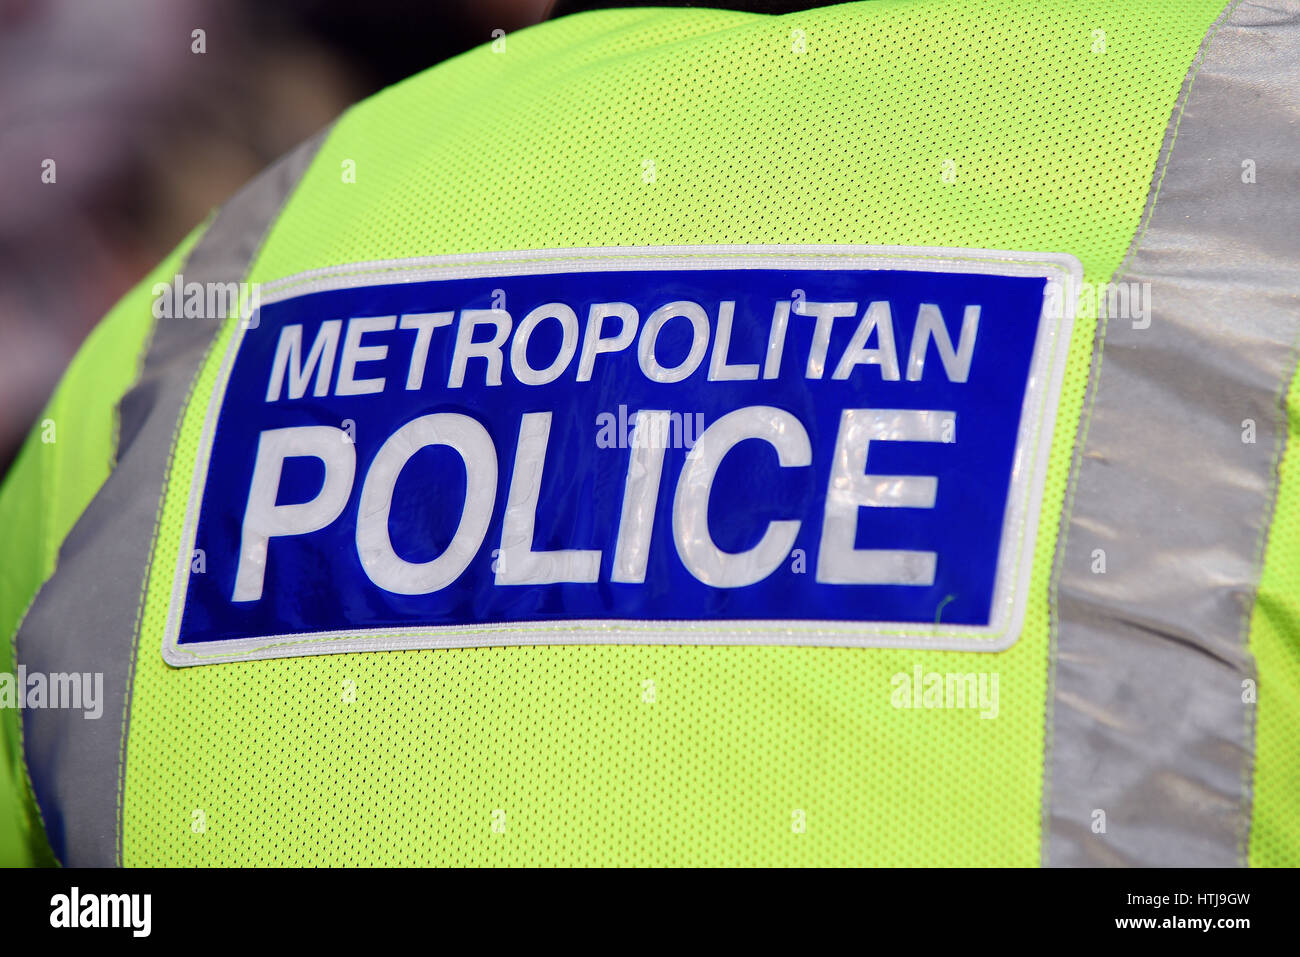 Metropolitan Police hi-viz jacket and reflective lettering Stock Photo